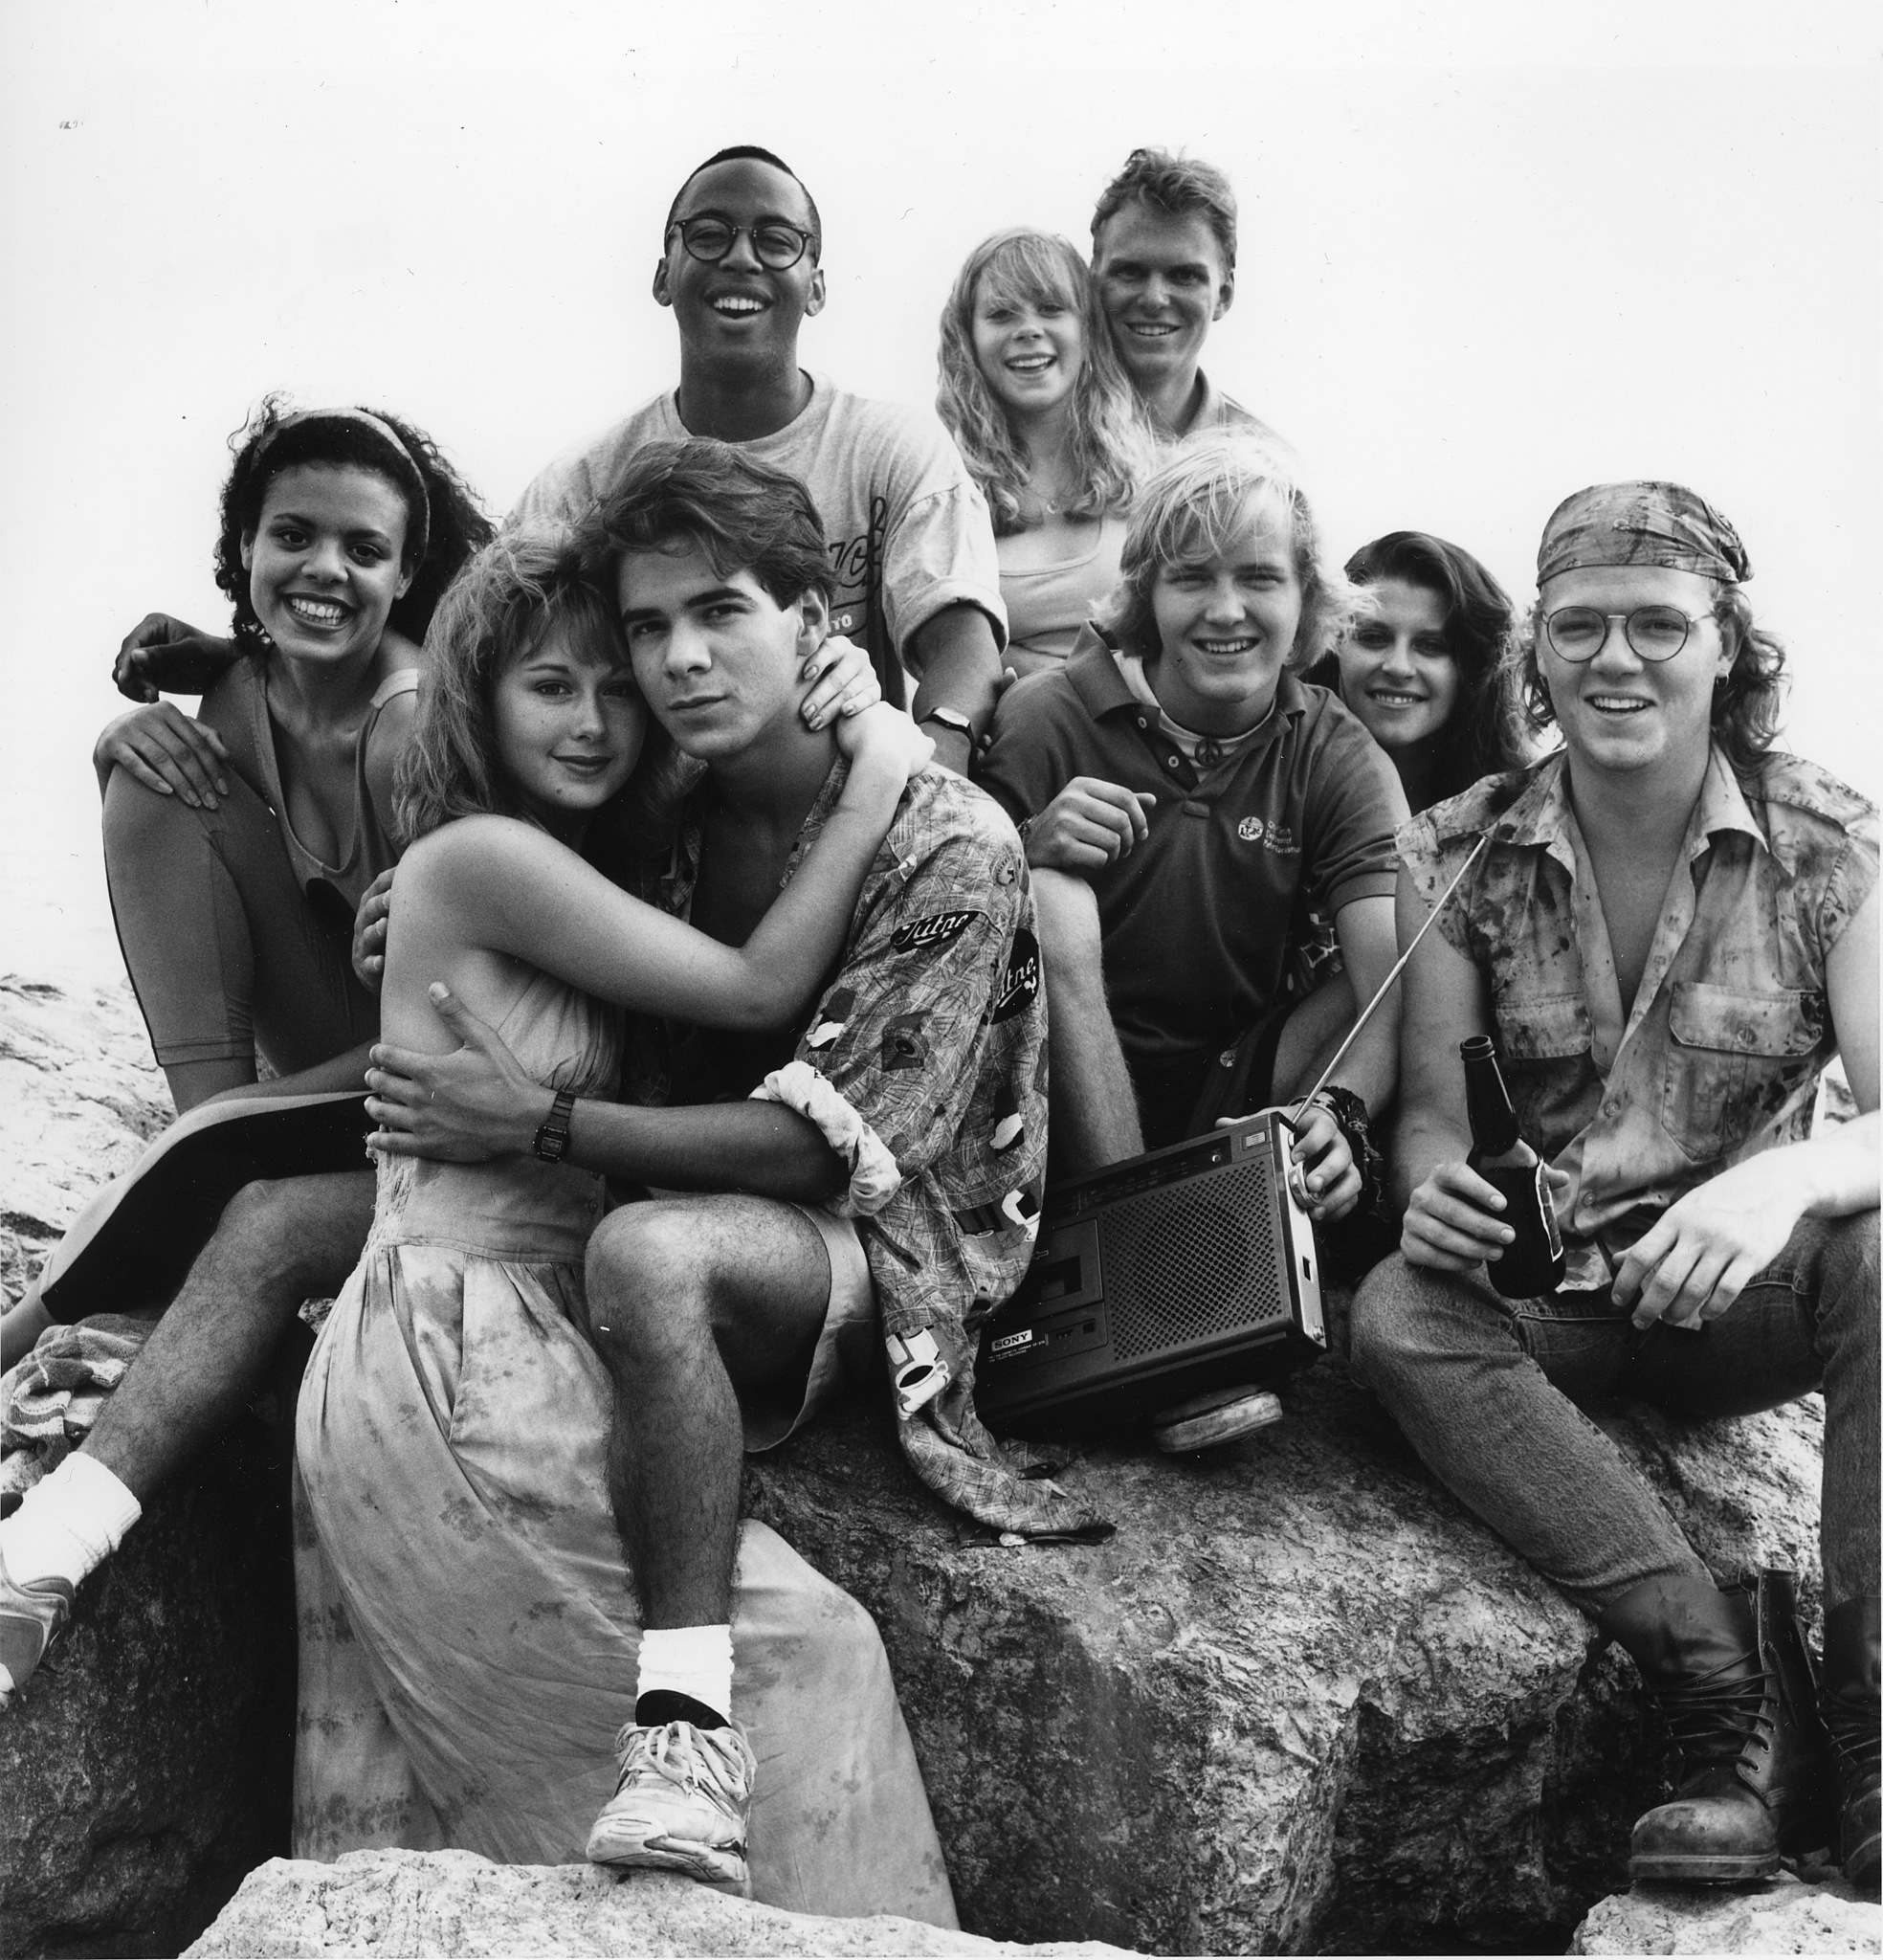 Winnipeg Free Press files</p><p>Degrassi High, School's Out featured featured (from left): Anais Granofsky (Lucy), Stacie Mistysysn (Caitlin), Pat Mastroianni (Joey), Dean Ifil (Bronco), Kirsty Bourne (Tessa), Stefan Brogren (Snake), Mike Carry (Simon), Irene Courakos (Alexa) and Neil Hope (Wheels).